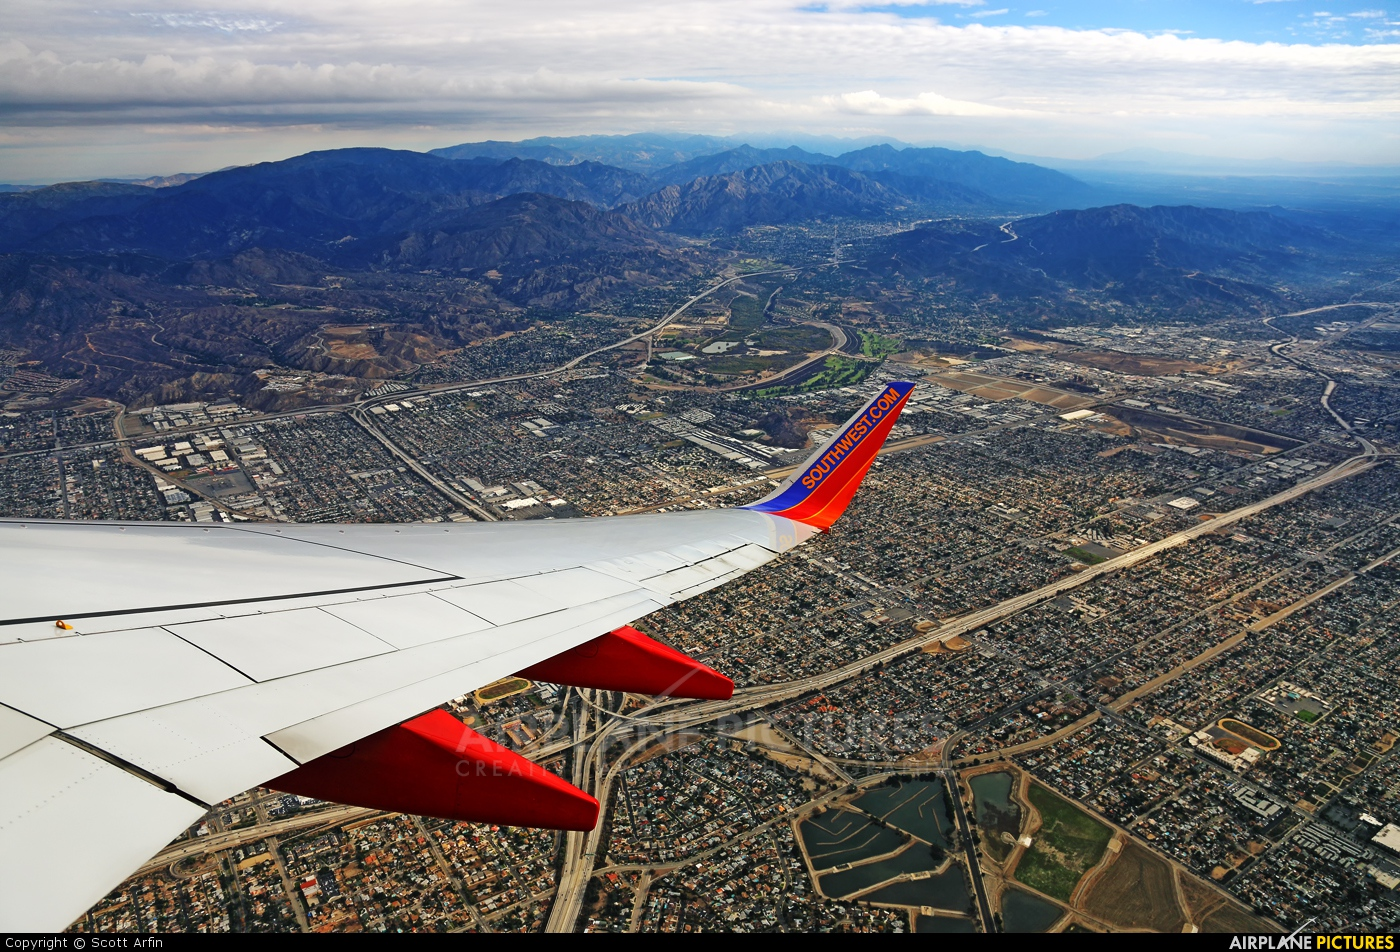 Southwest Airlines N402WN aircraft at In Flight - California